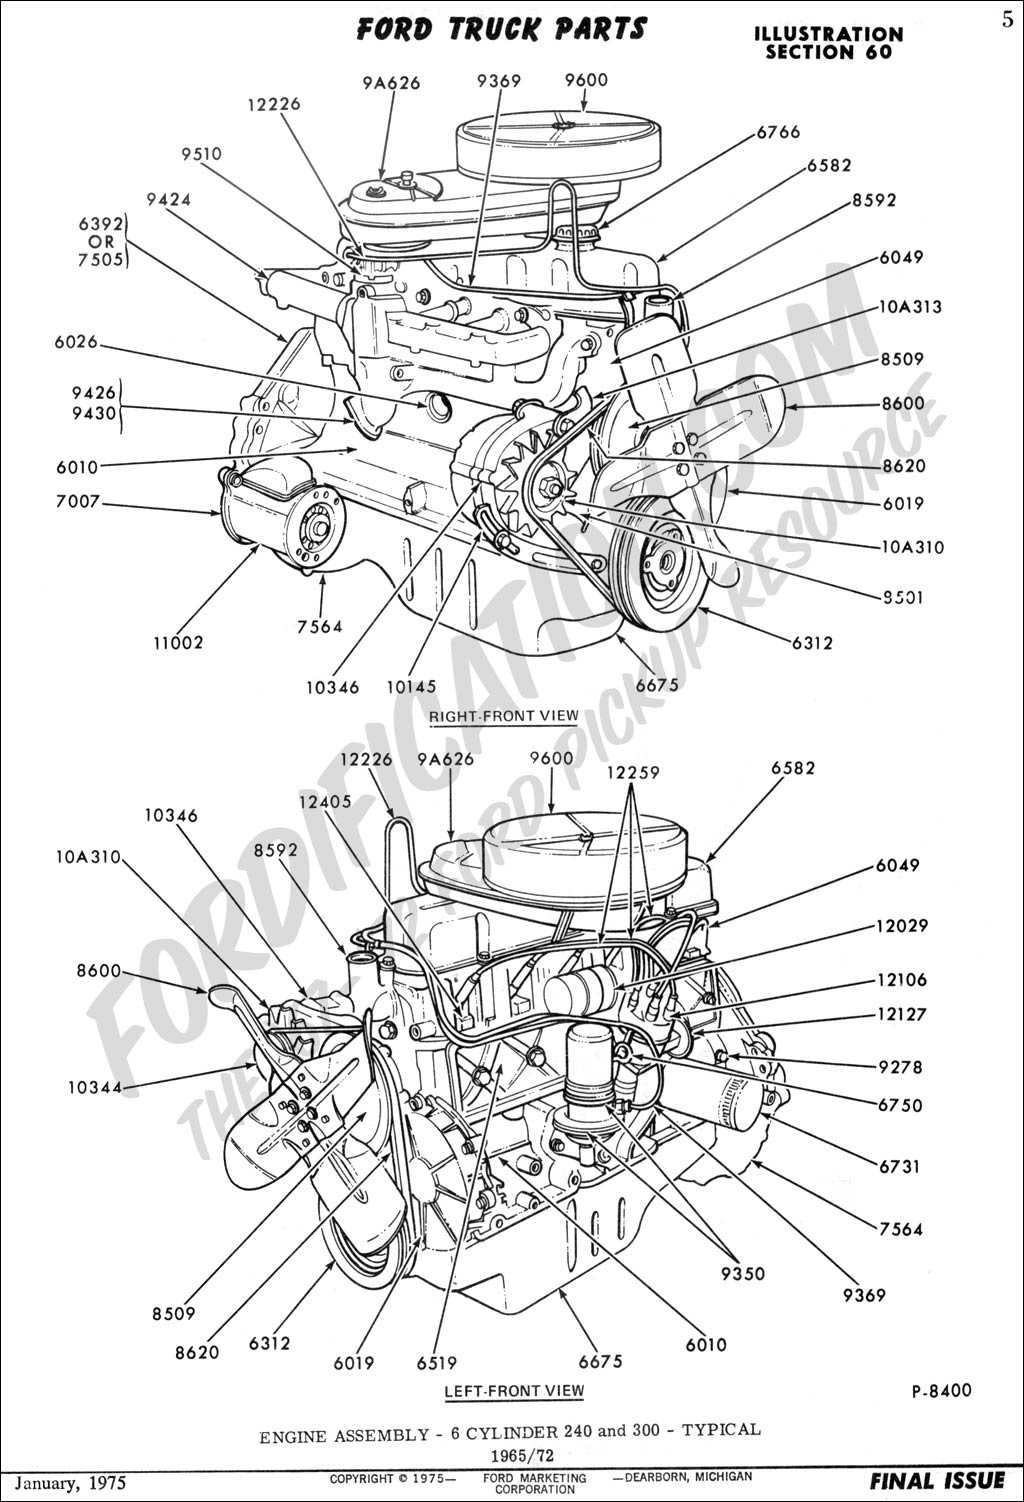 How To Replace Drive Belt Mazda 3 besides Serpentine Belt Diagram 2009 Gmc Acadia V6 36 Liter Engine 03773 likewise 3ny2d Location Removal Instructions Egr Valve 2003 Duramax additionally Mazda 3 2004 Suspension Diagram moreover pressor Clutch Not Engaging. on 2010 mazda 3 engine diagram